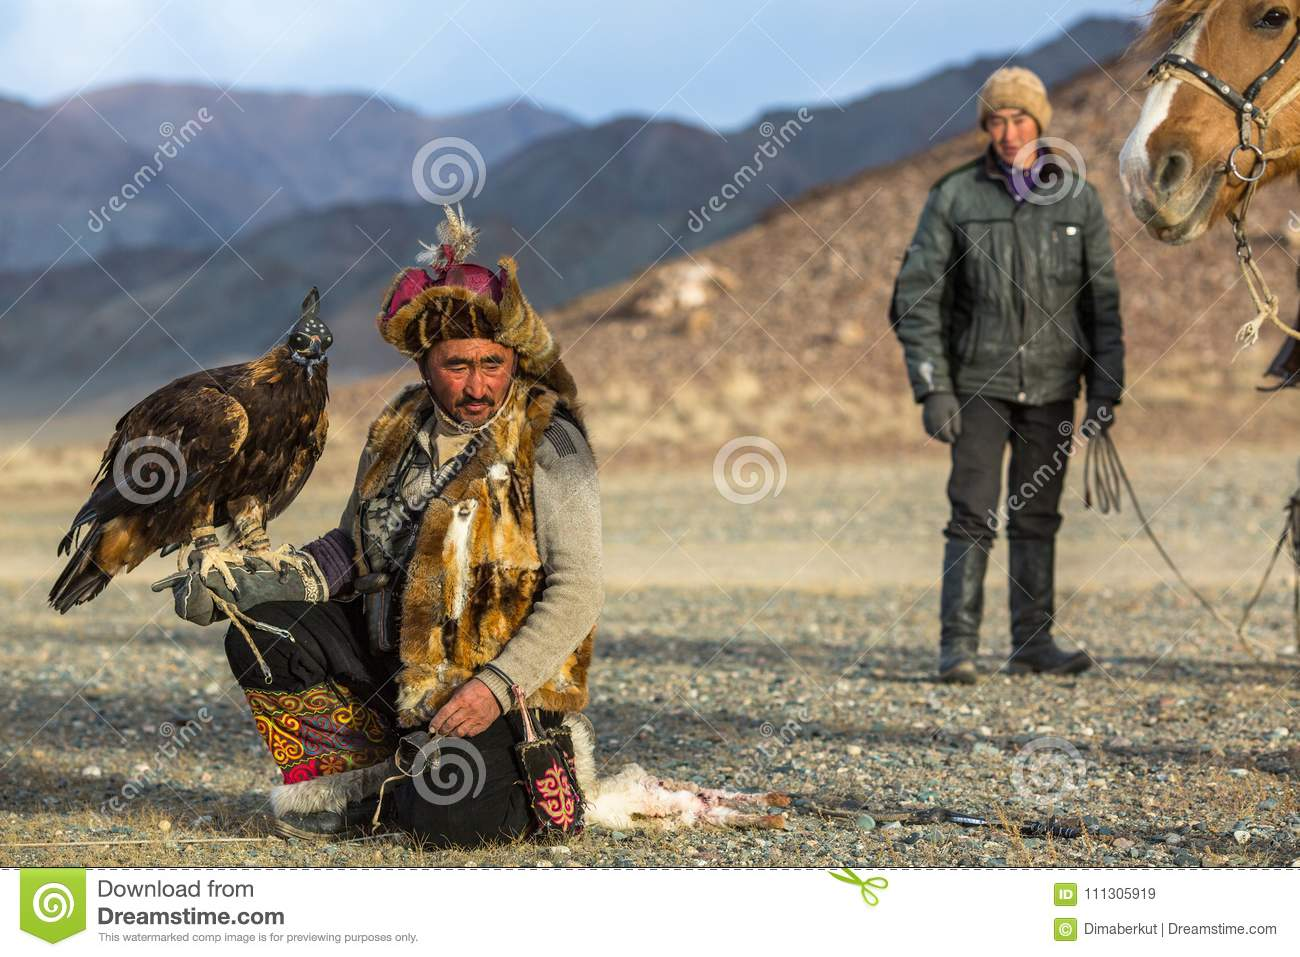 Berkutchi Eagle Hunter while hunting to the hare with a golden eagles on his arms in the mountains of Bayan-Olgii aimag.